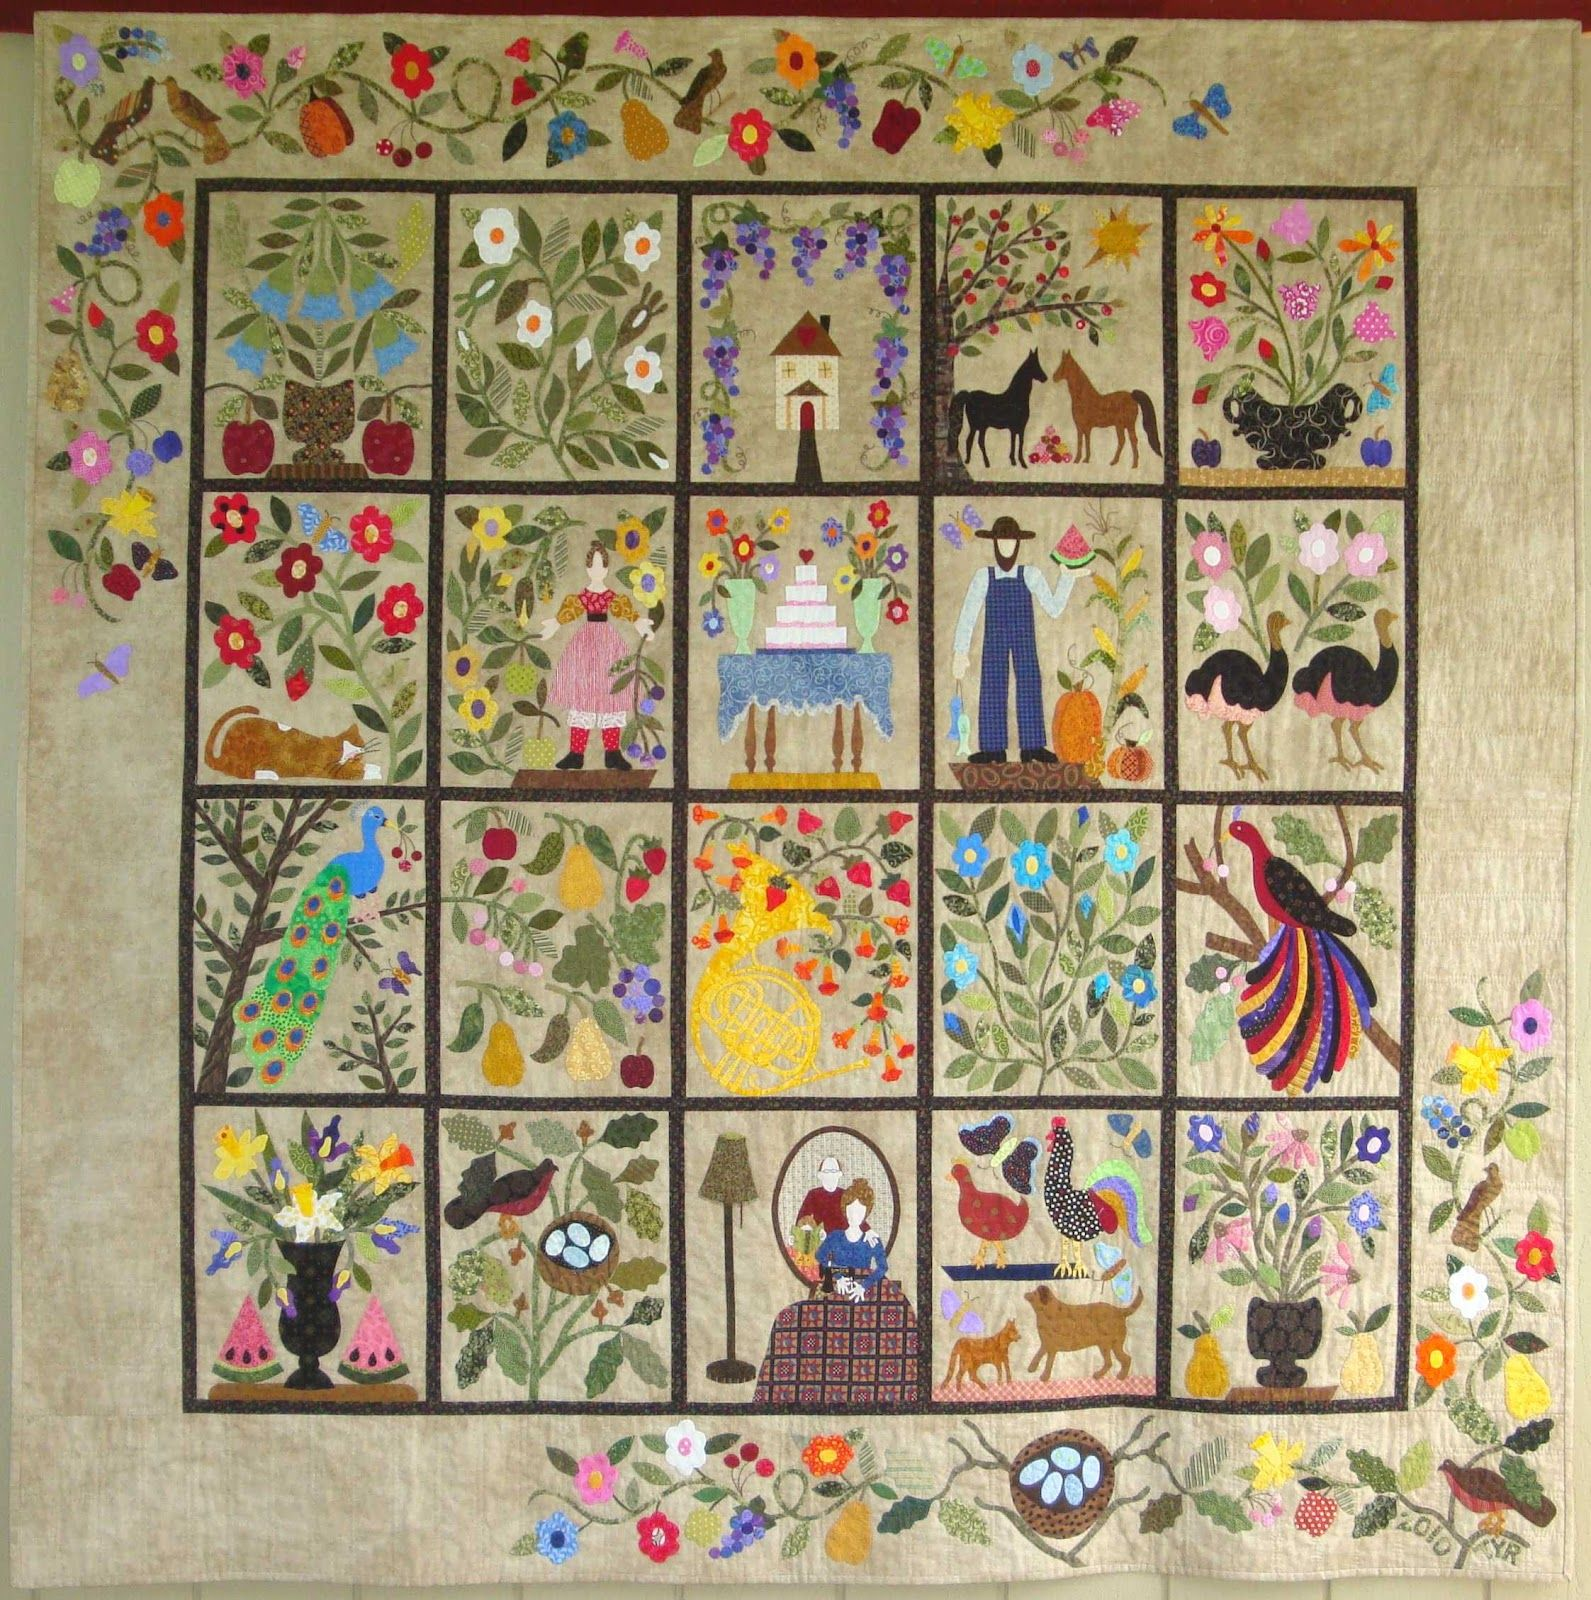 Civil War Bride Quilt With Many Customized Blocks